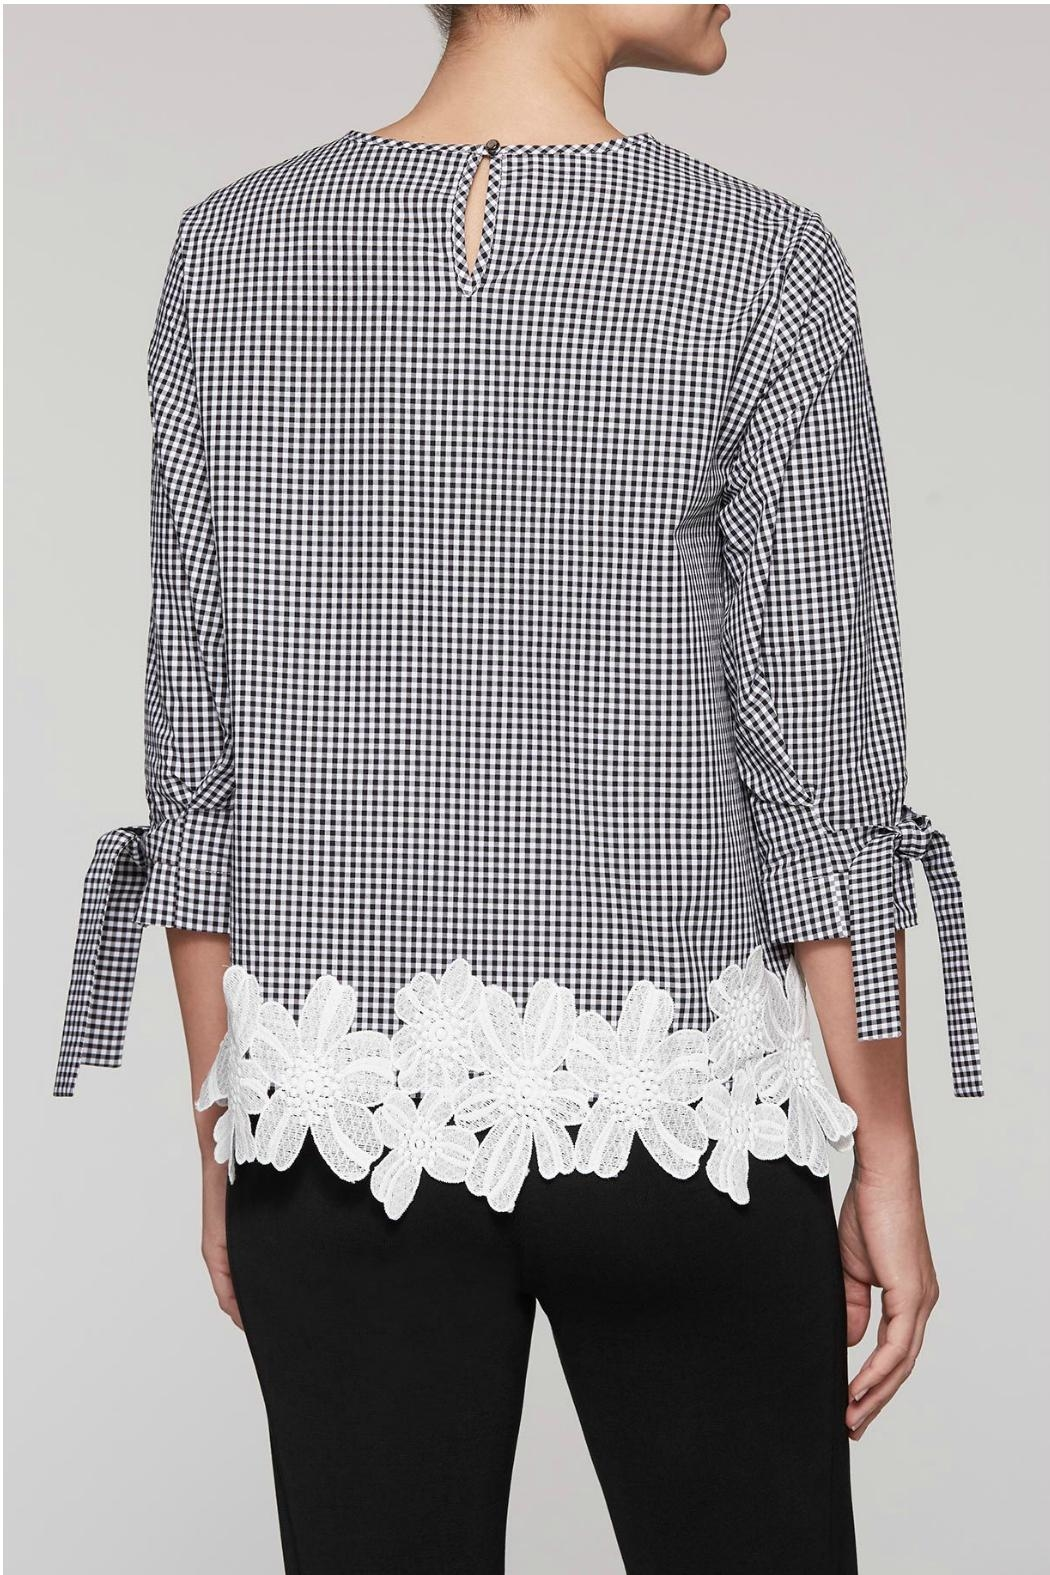 Ming Wang Gingham Check Blouse - Back Cropped Image